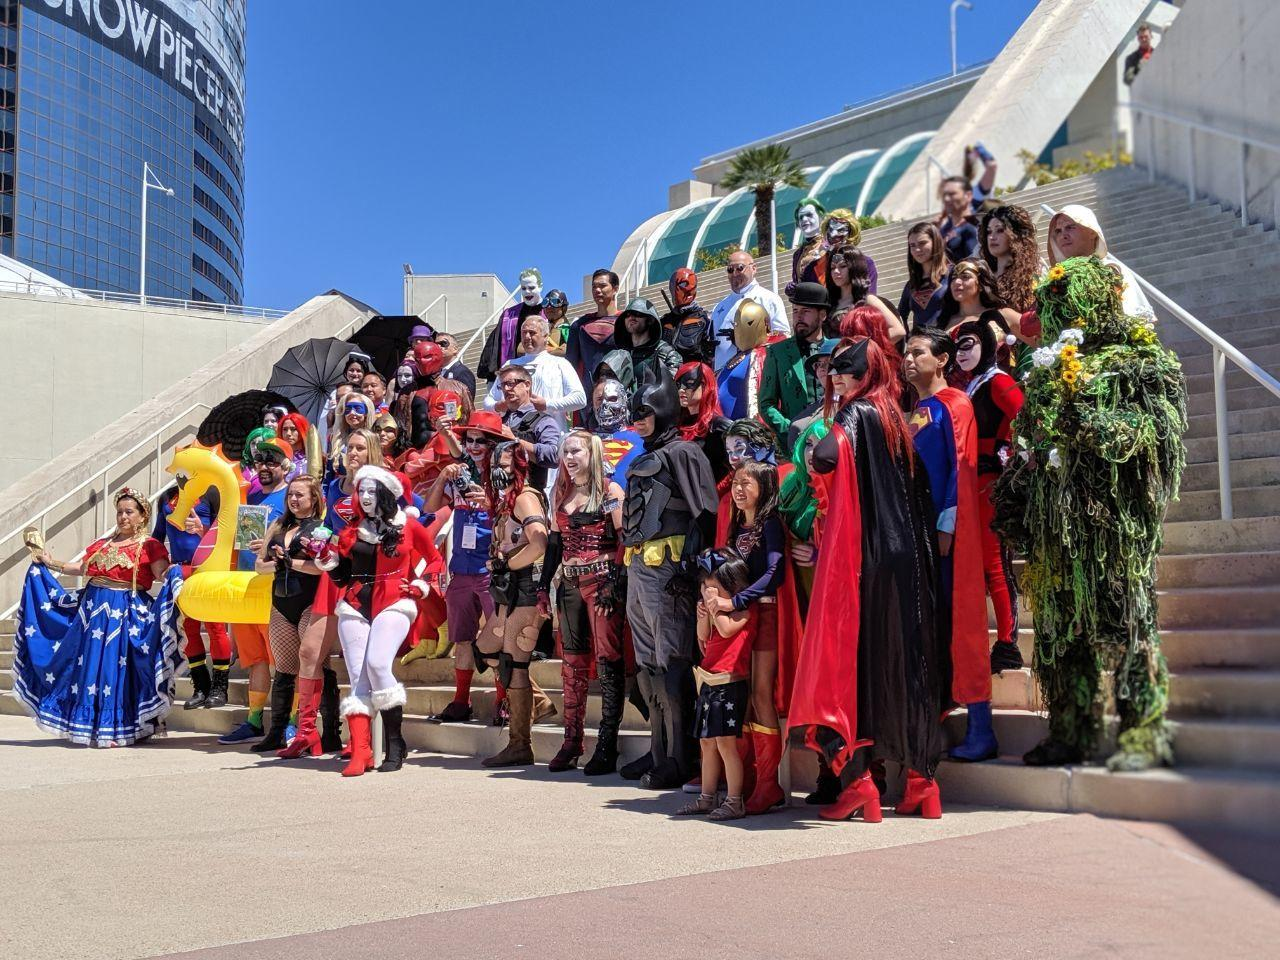 San Diego Comic-Con may be different this year, but we can still marvel at the great cosplay we've seen in the past.